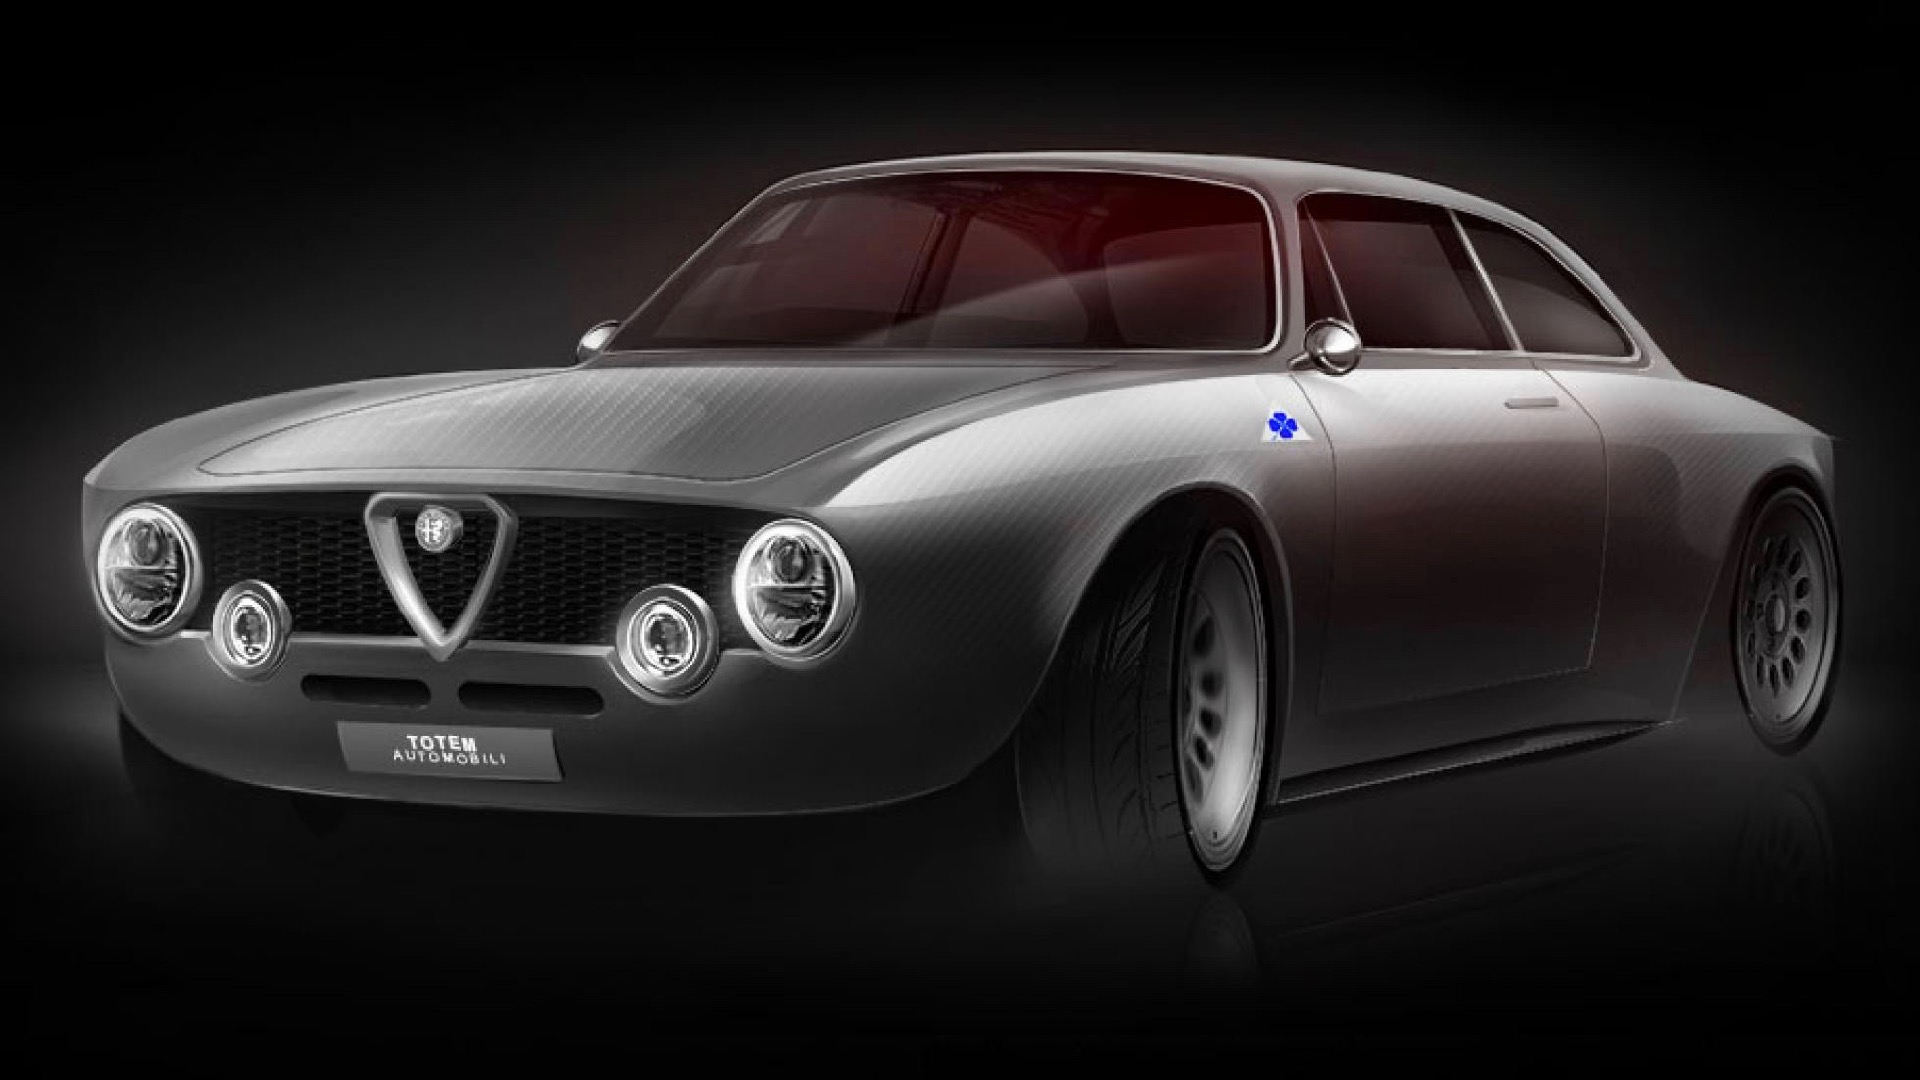 Totem Automobili's restomod Alfa Romeo GTA is an electric, carbon-fiber-bodied stunner - Motor Authority